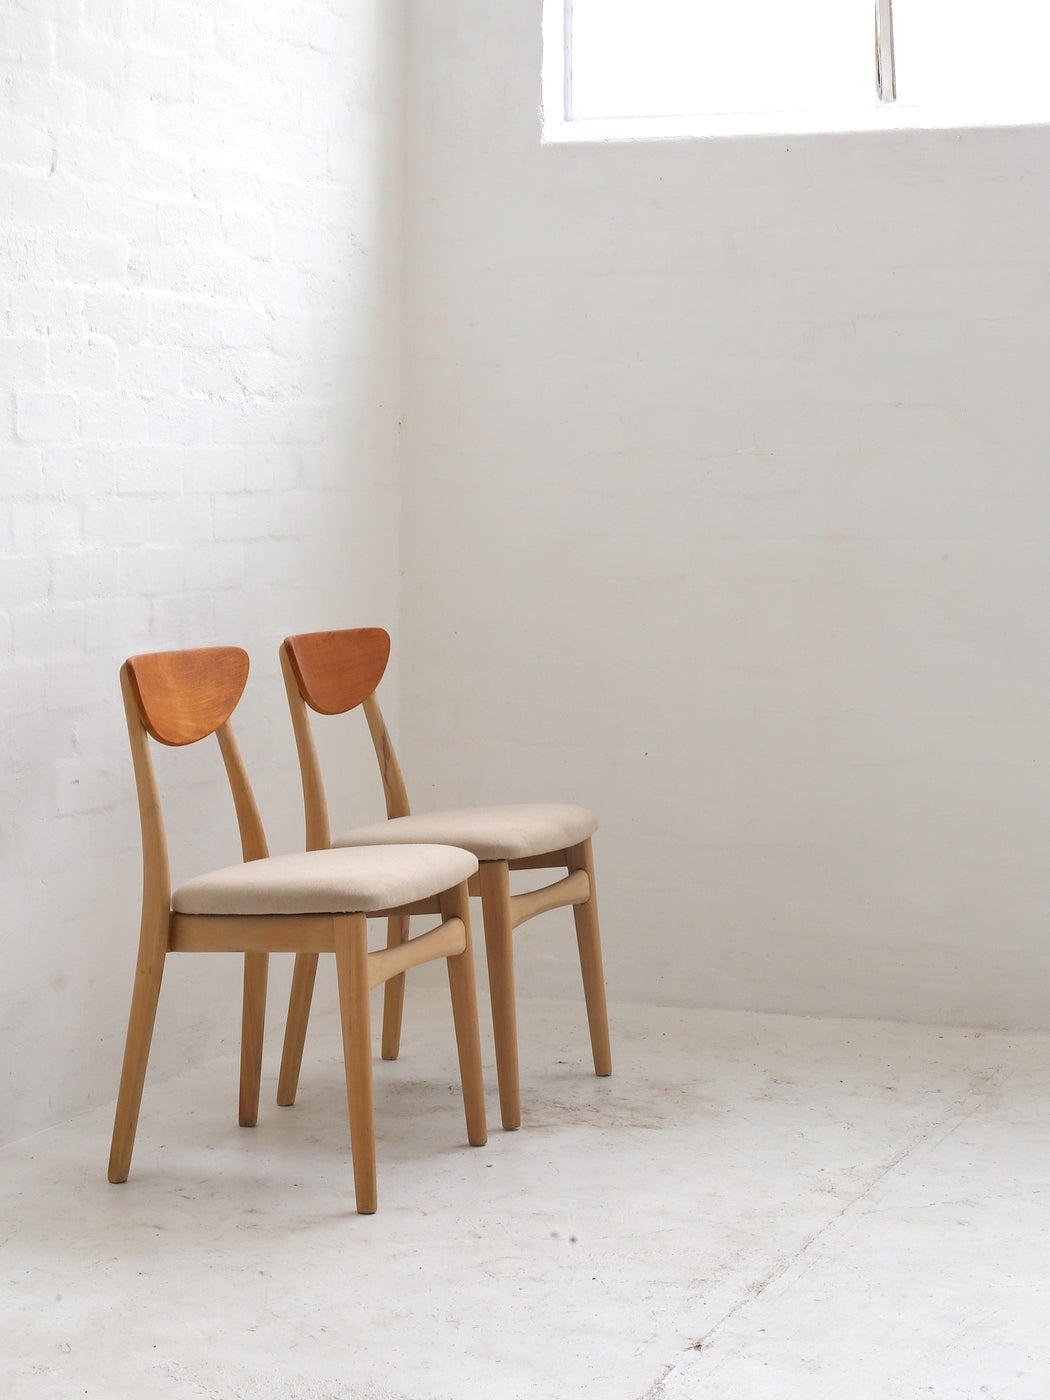 Japanese Dining Chairs